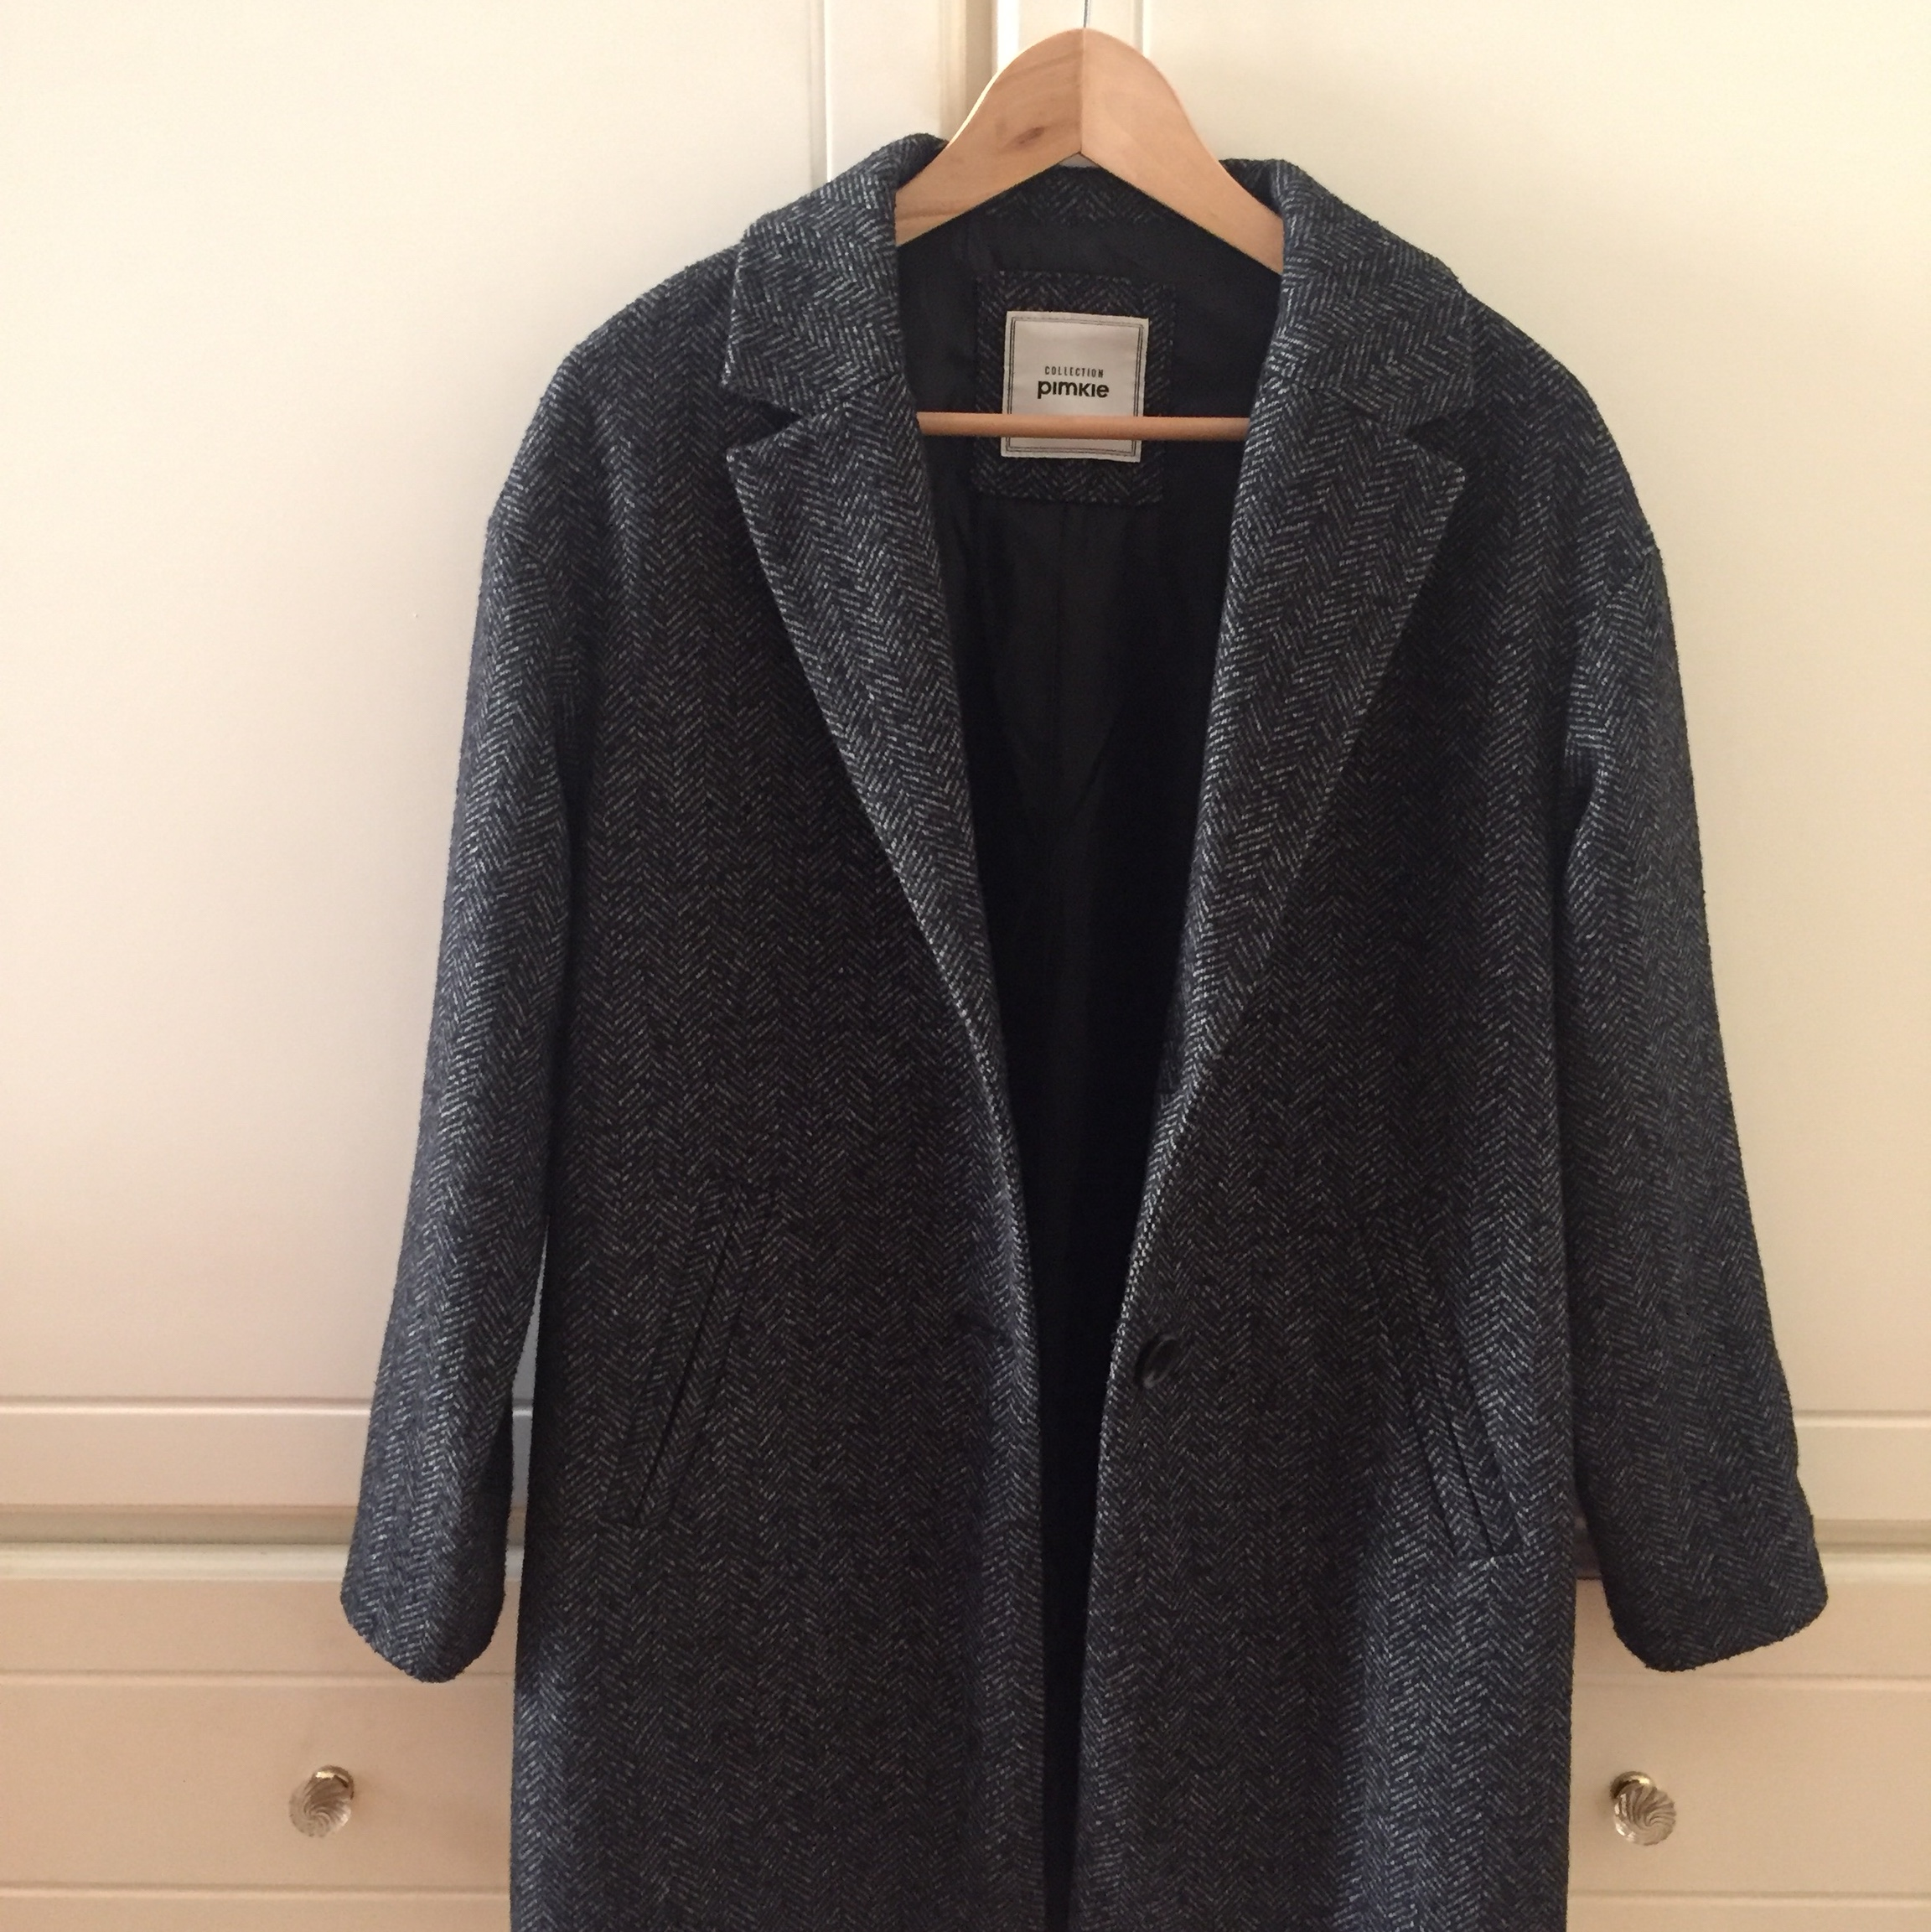 cheap for discount fb75d eff54 Giacca / cappotto Pimkie spigato herringbone coat.... - Depop